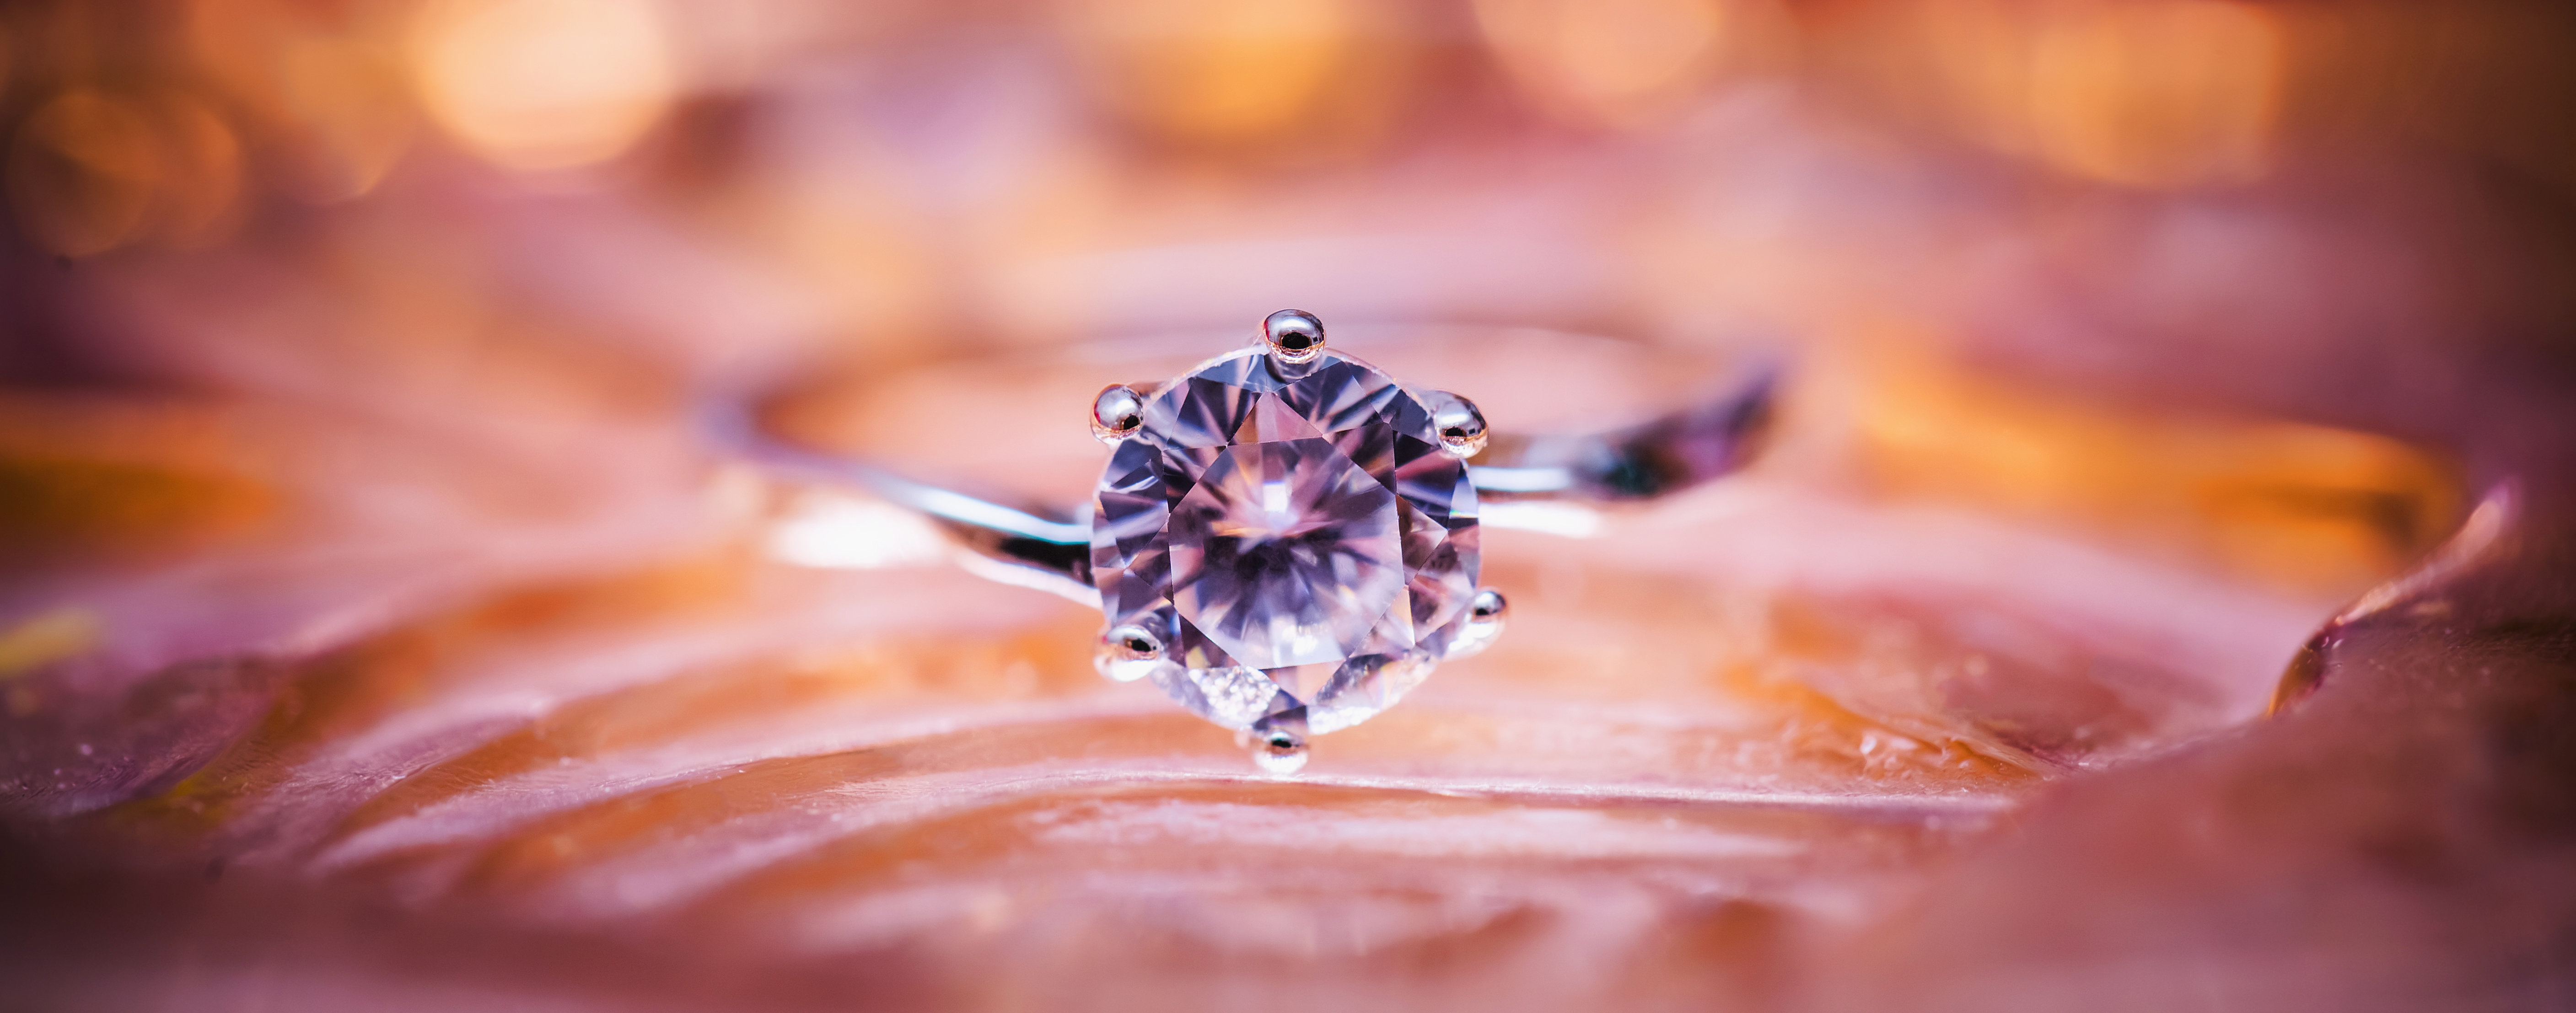 Sapphire vs yellow diamond: which is best? Pages 1 - 9 - Text ...